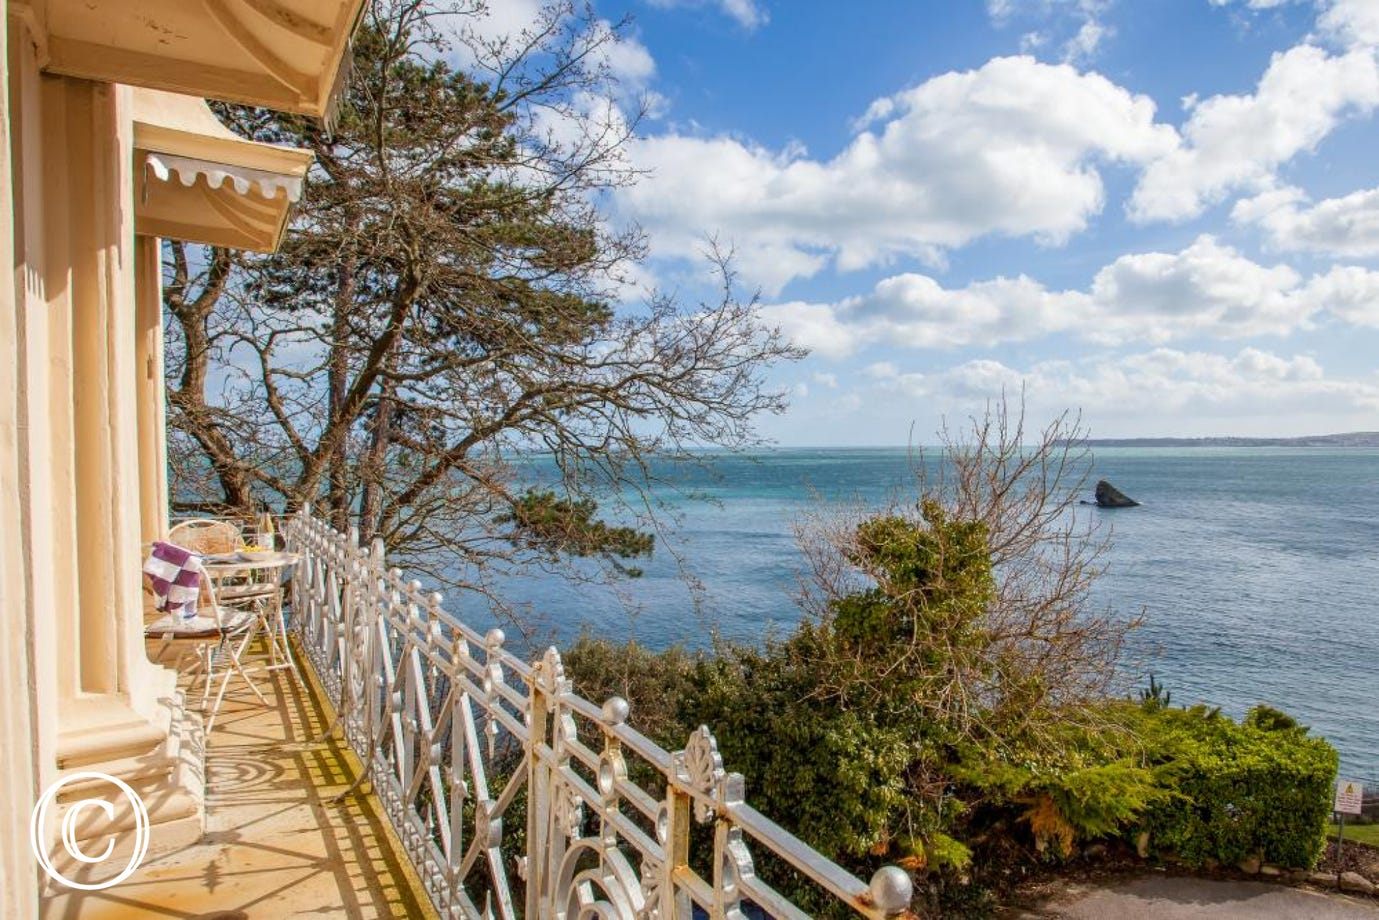 torquay apartment to rent with beautiful sea view balcony. situated in Hesketh Crescent